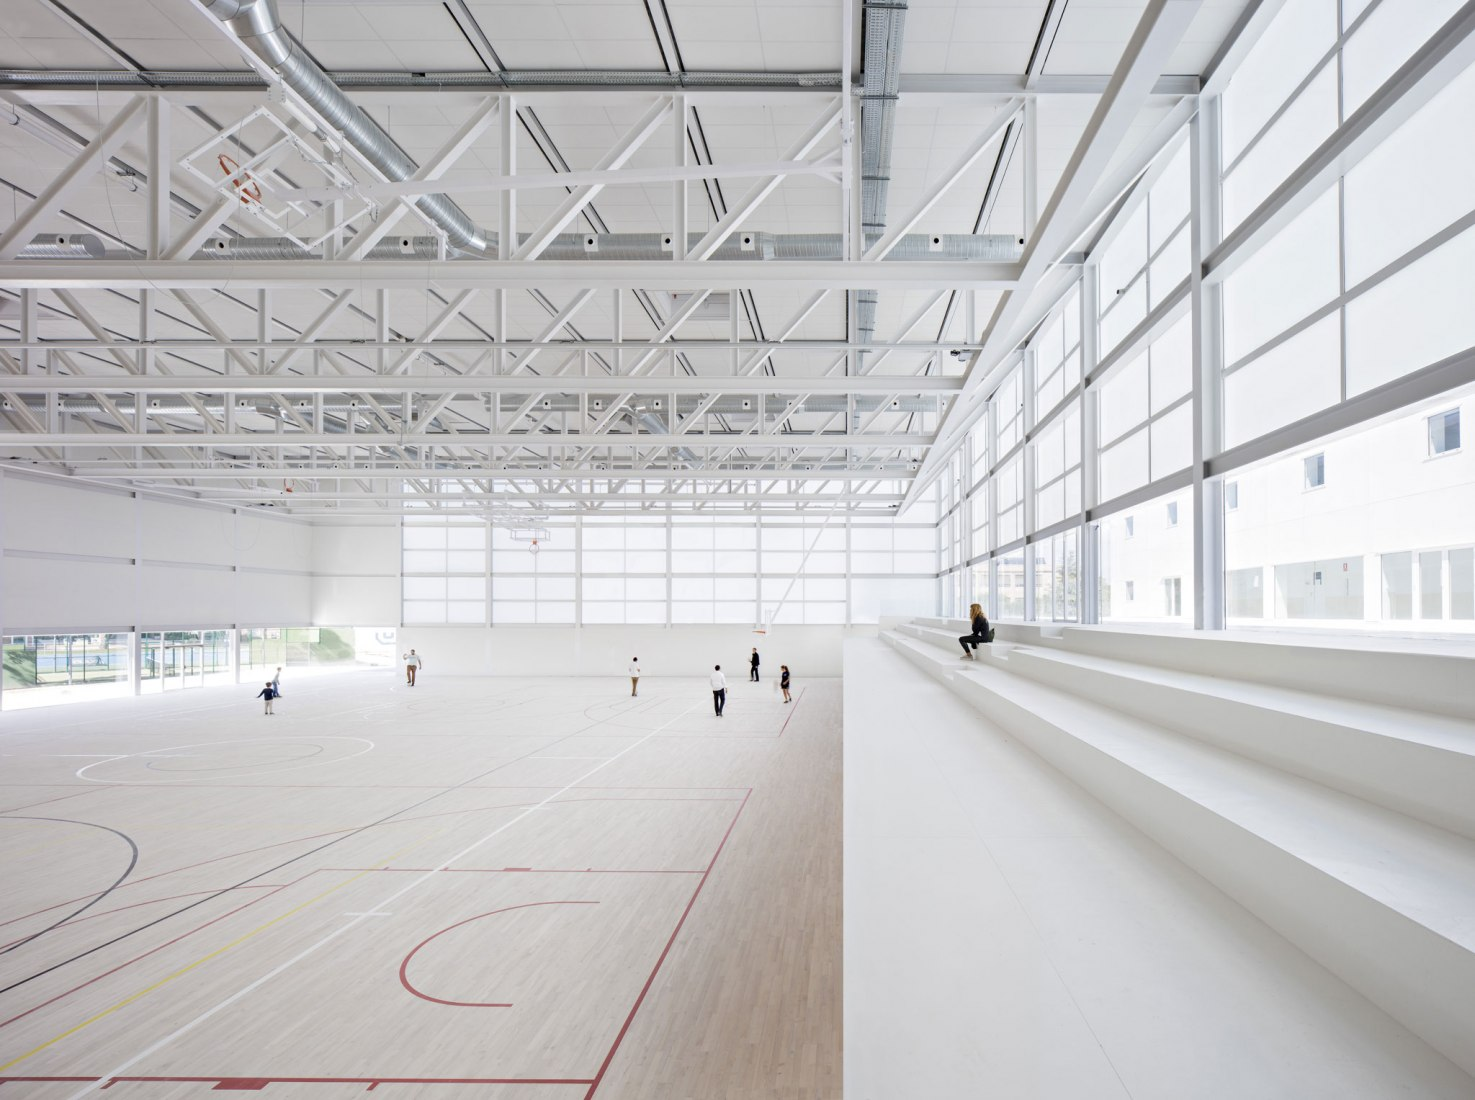 Sports center. Universidad Francisco de Vitoria Sports Center by Alberto Campo Baeza. Photograph © Javier Callejas